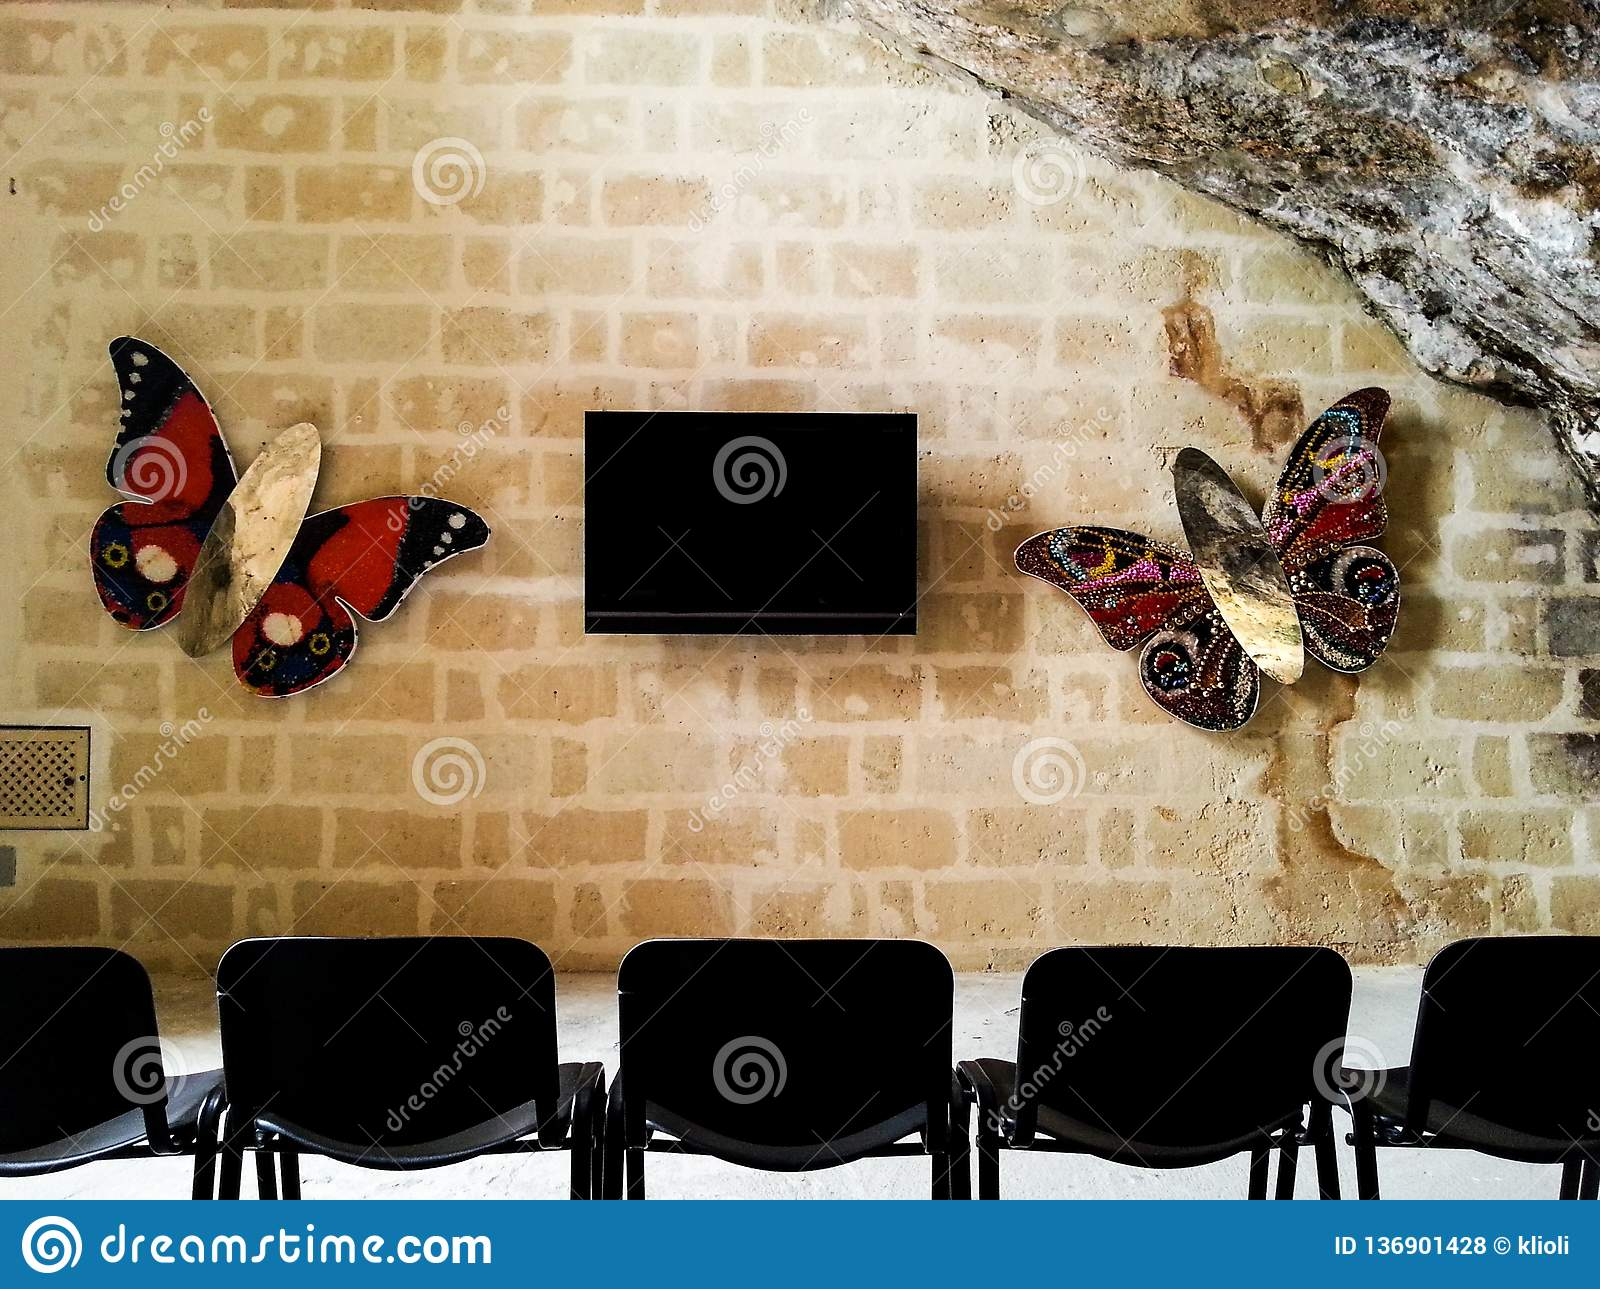 TV hanging on a brick wall surrounded by butterflies in an ancient cave